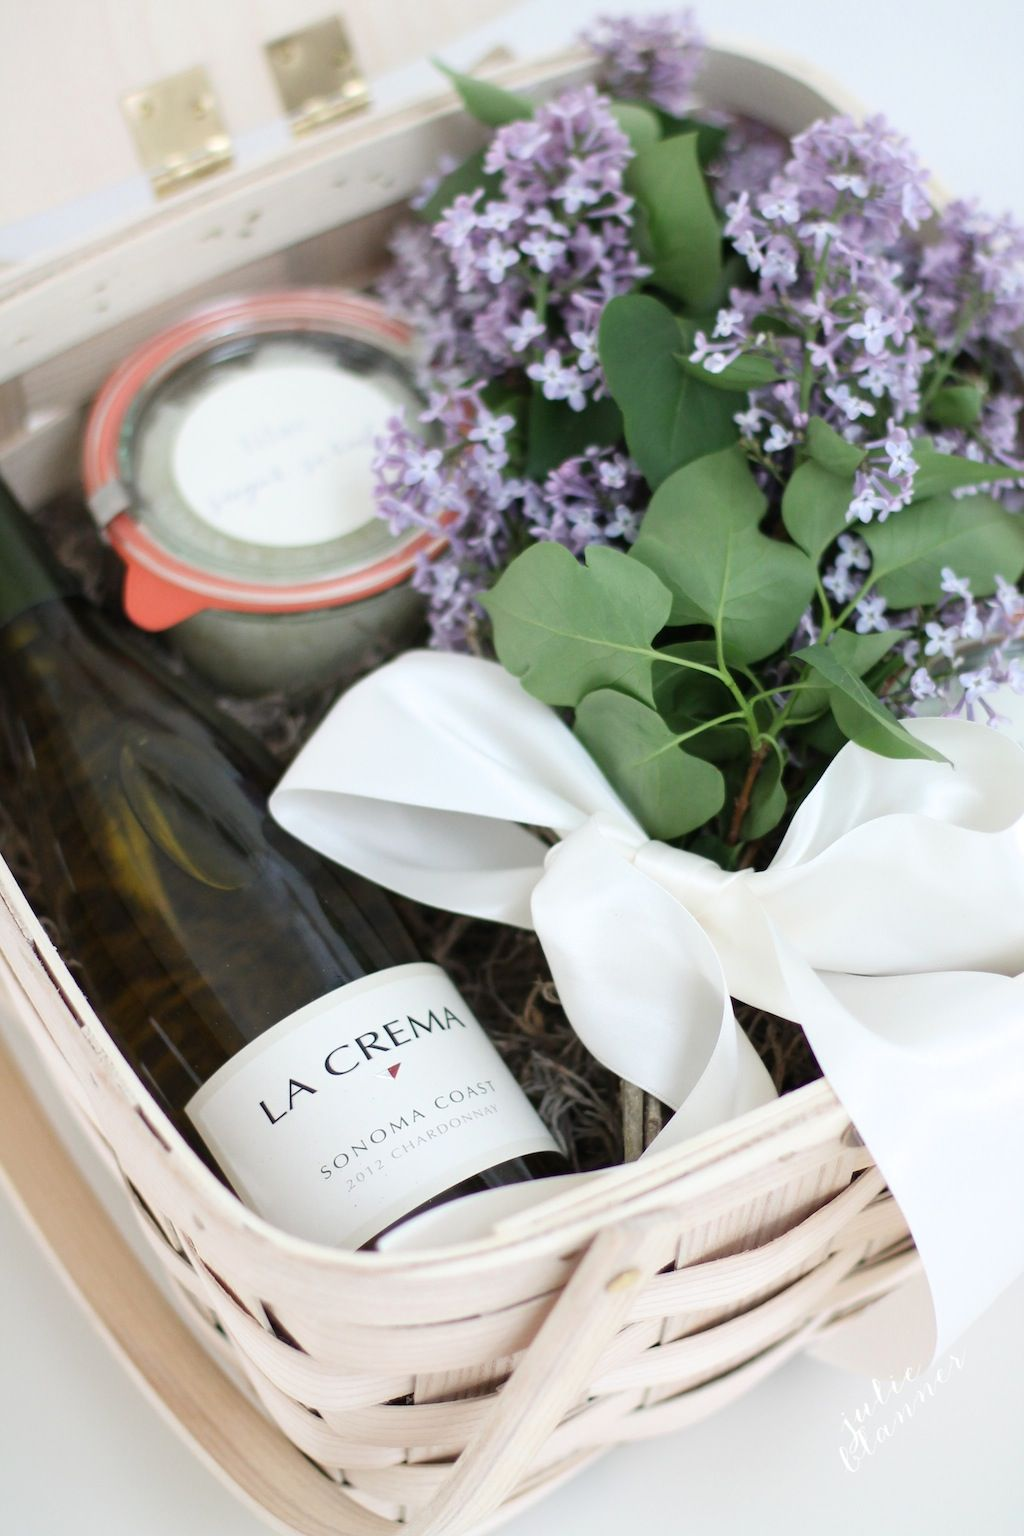 Creative Hostess Gifts That You Can DIY